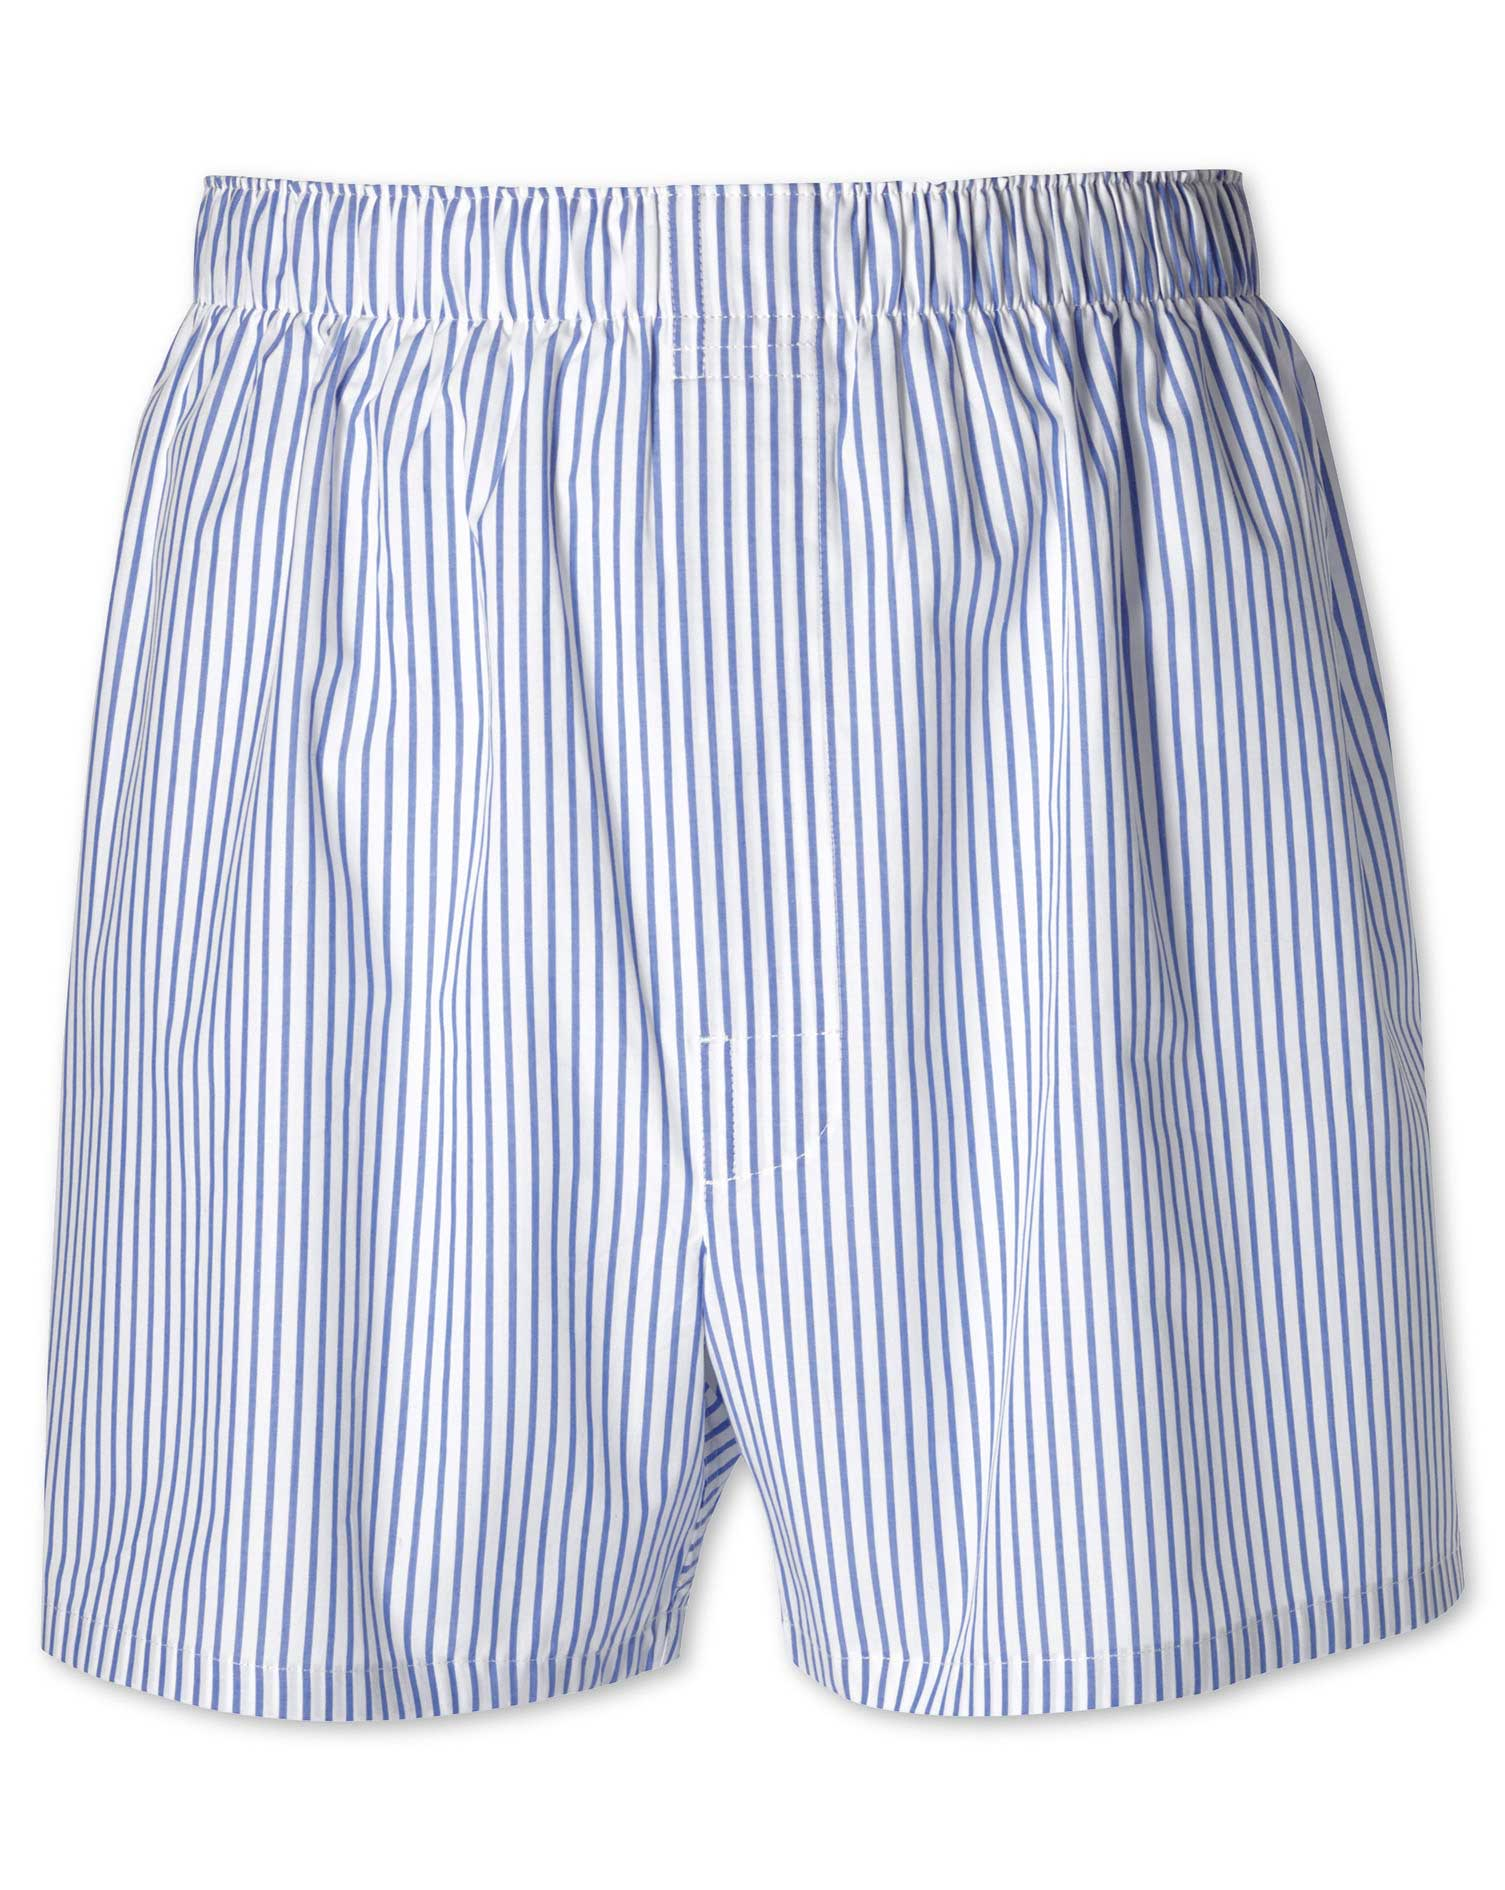 Sky Blue Stripe Woven Boxers Size Small by Charles Tyrwhitt